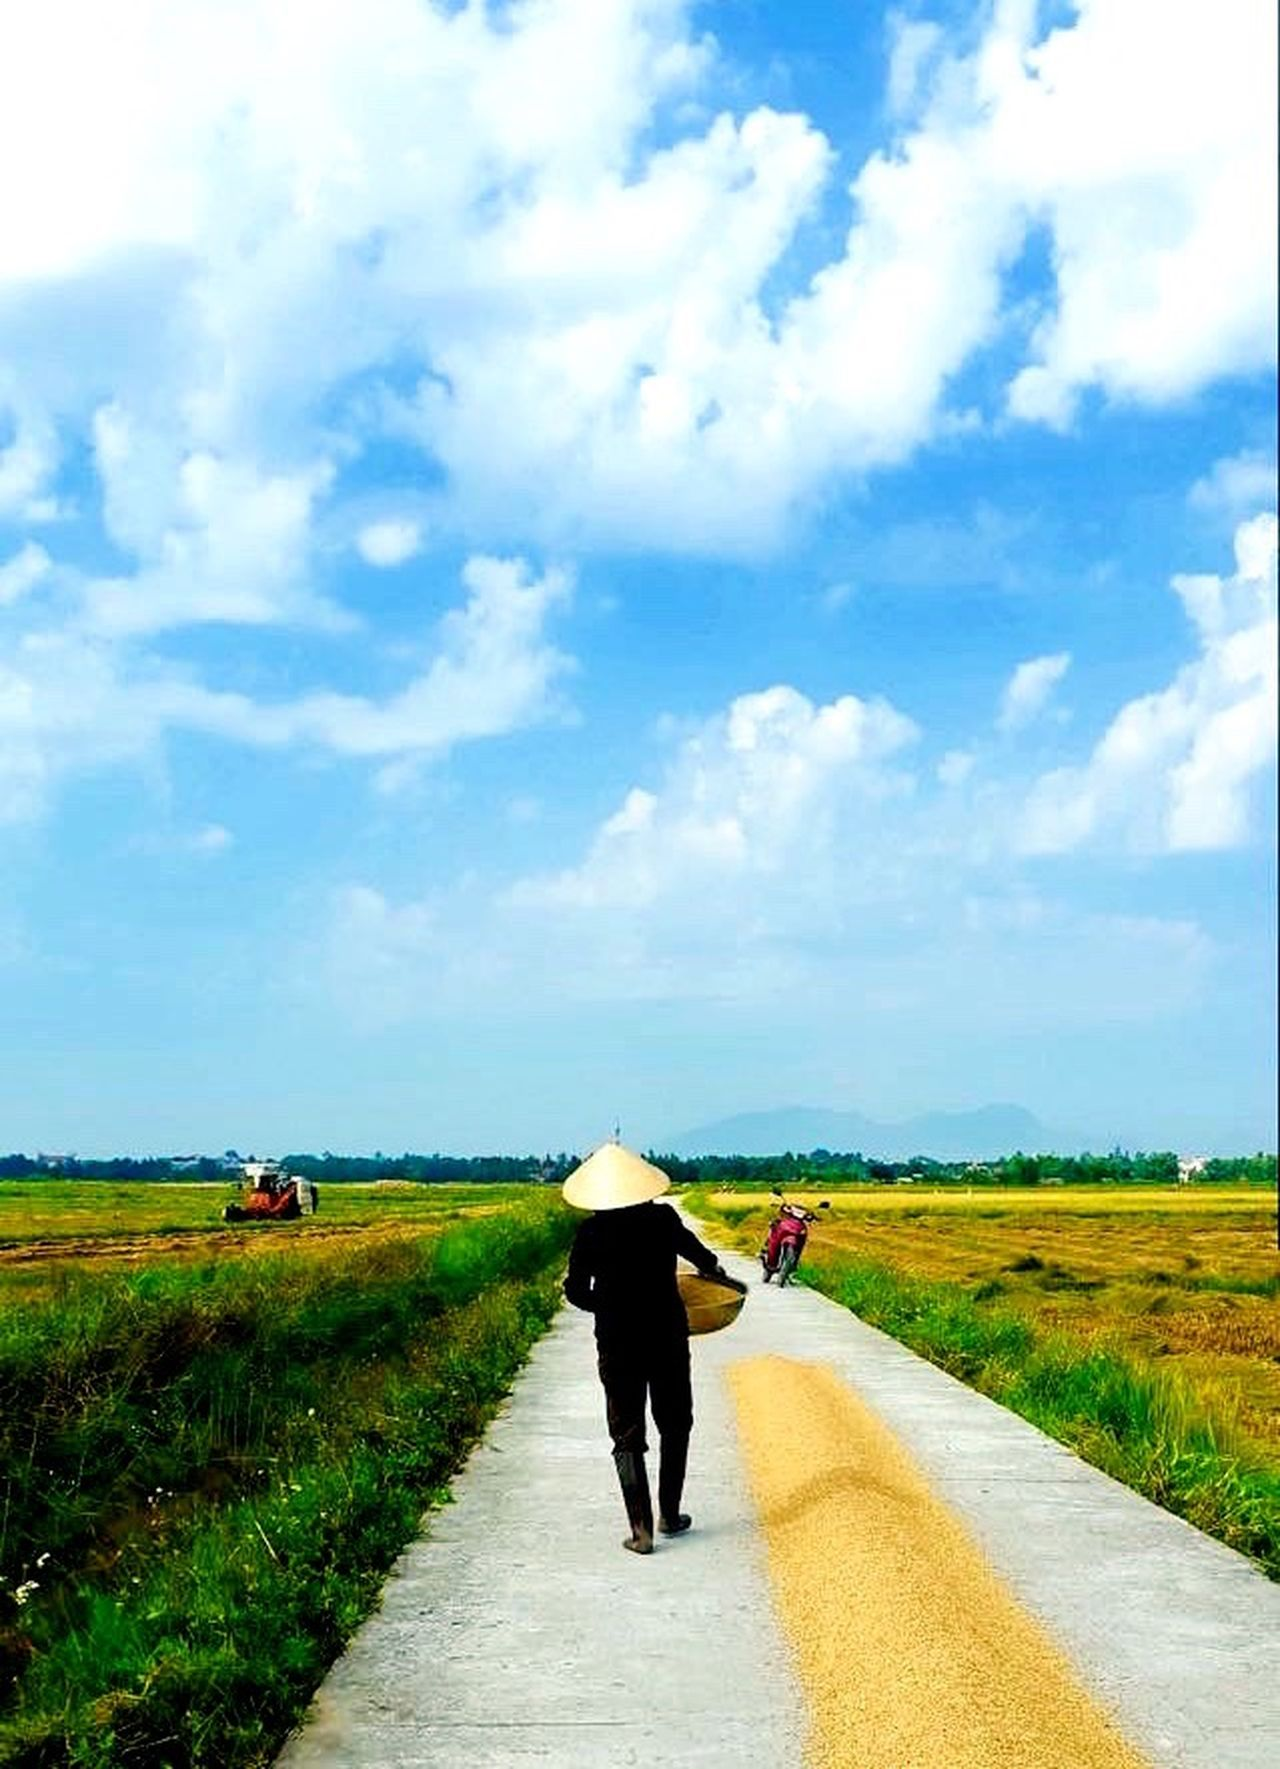 Re Edited Edited Rice Field Rice Paddy Ricefield Sunshine Drying Making A Living Conical Hat Hat Sun Sunny Sunny Day Working Working Hard Hard Work Harvesting Harvest Scene Rural Rural Scene Hoi An Vietnam Showcase April Up Close Street Photography